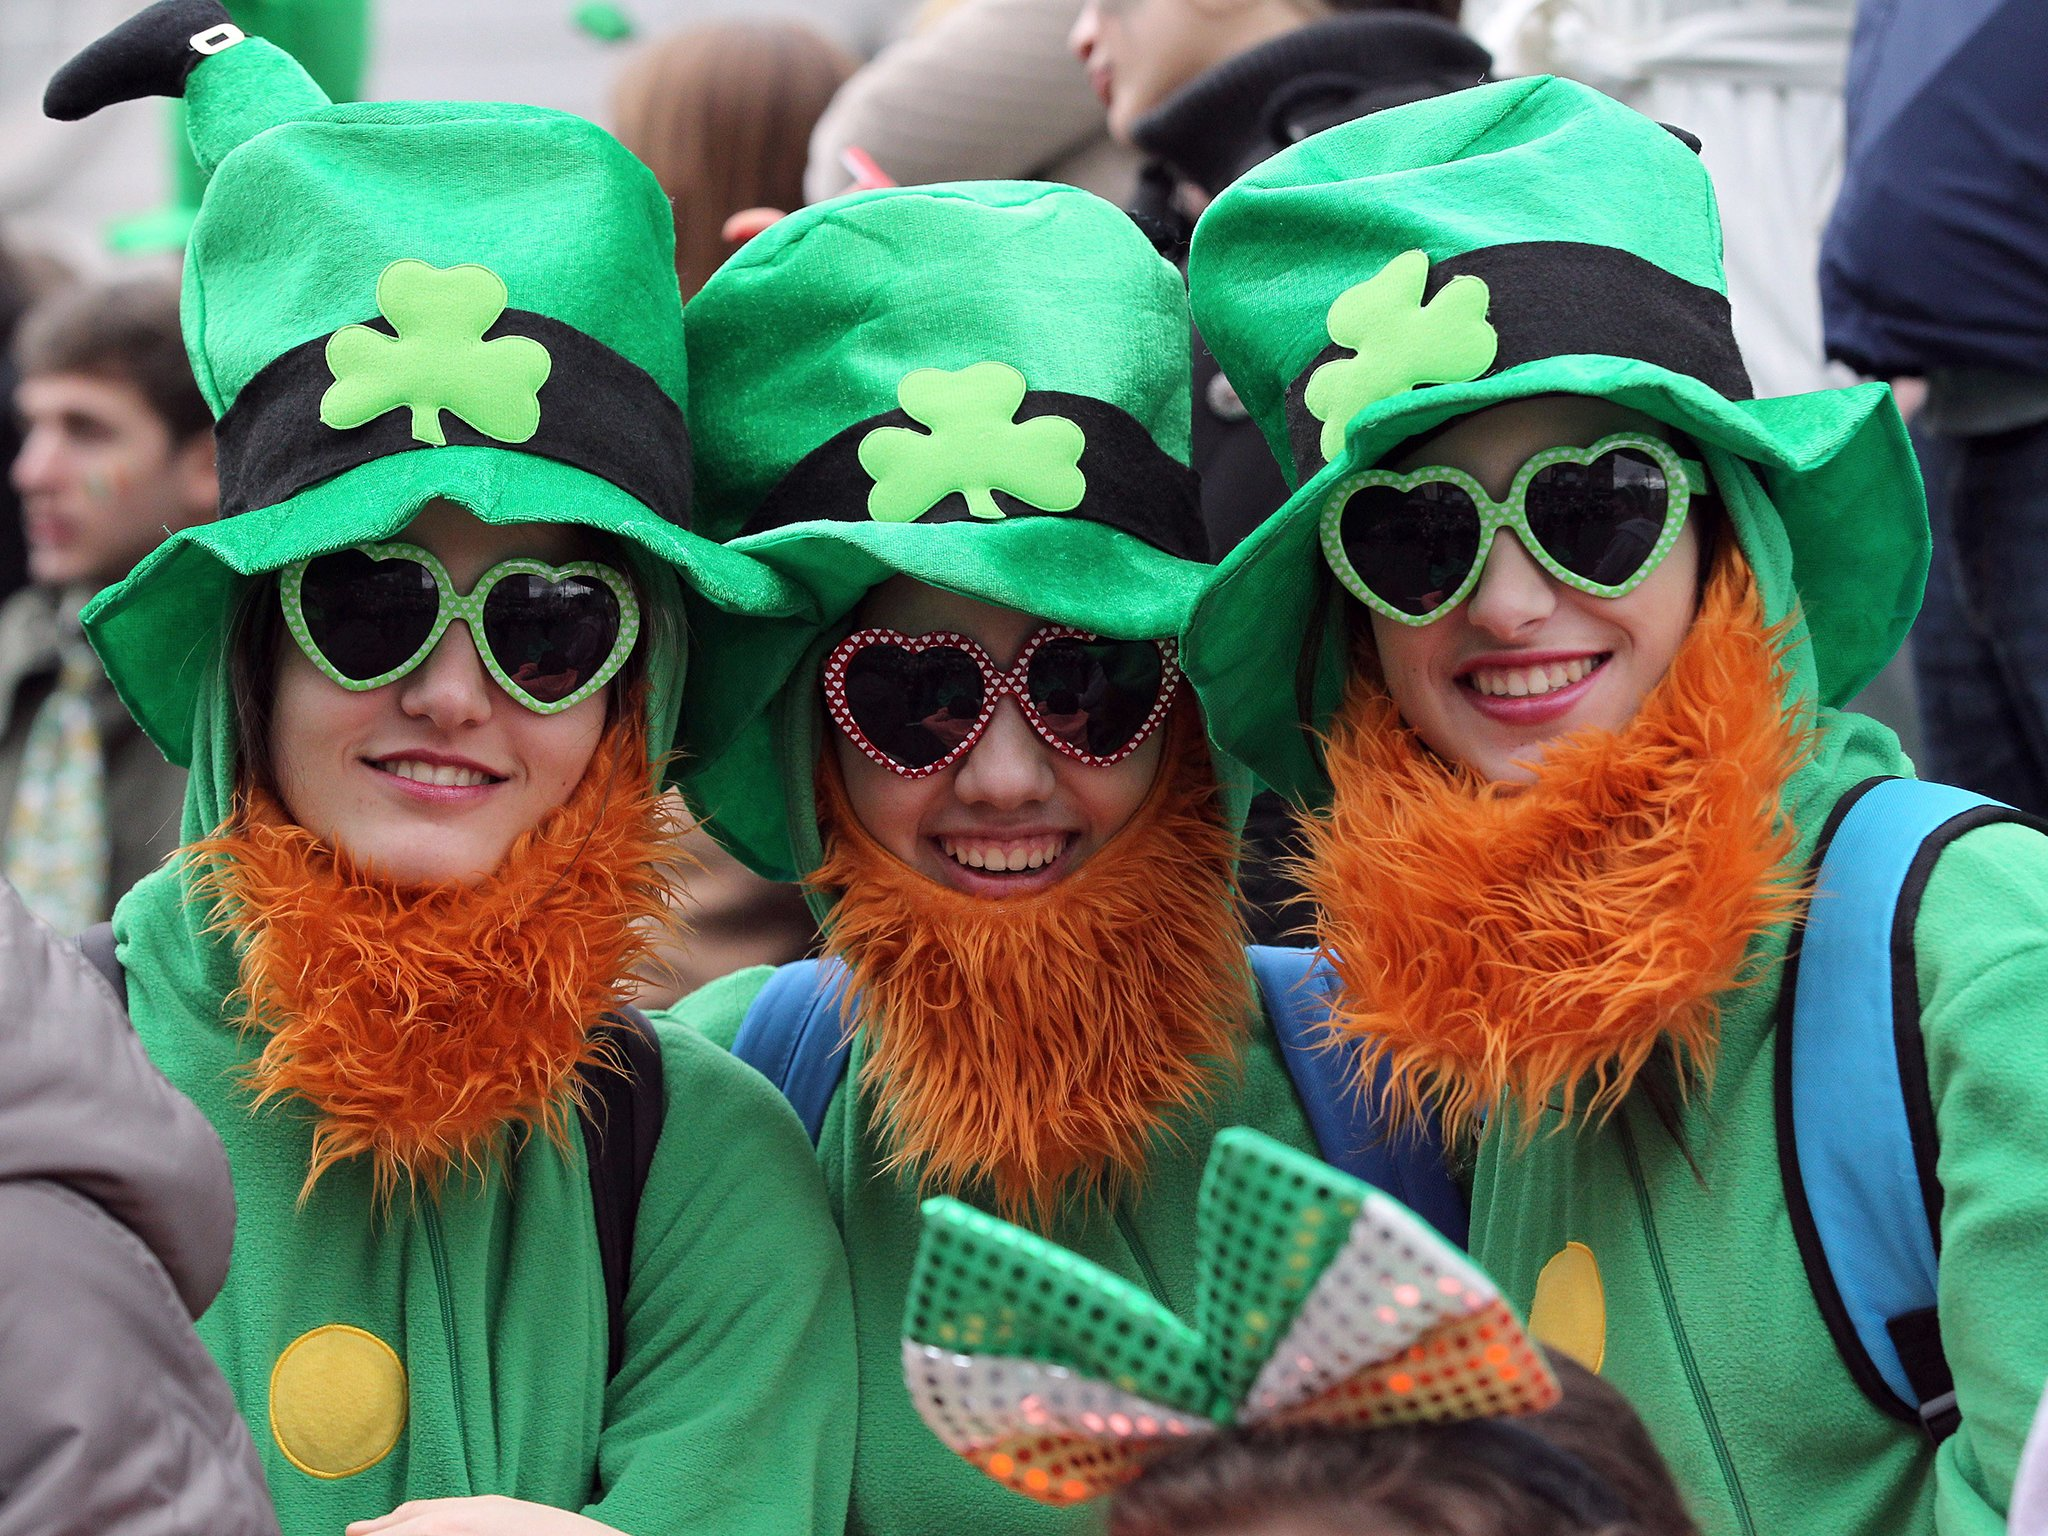 st-patricks-day-getty